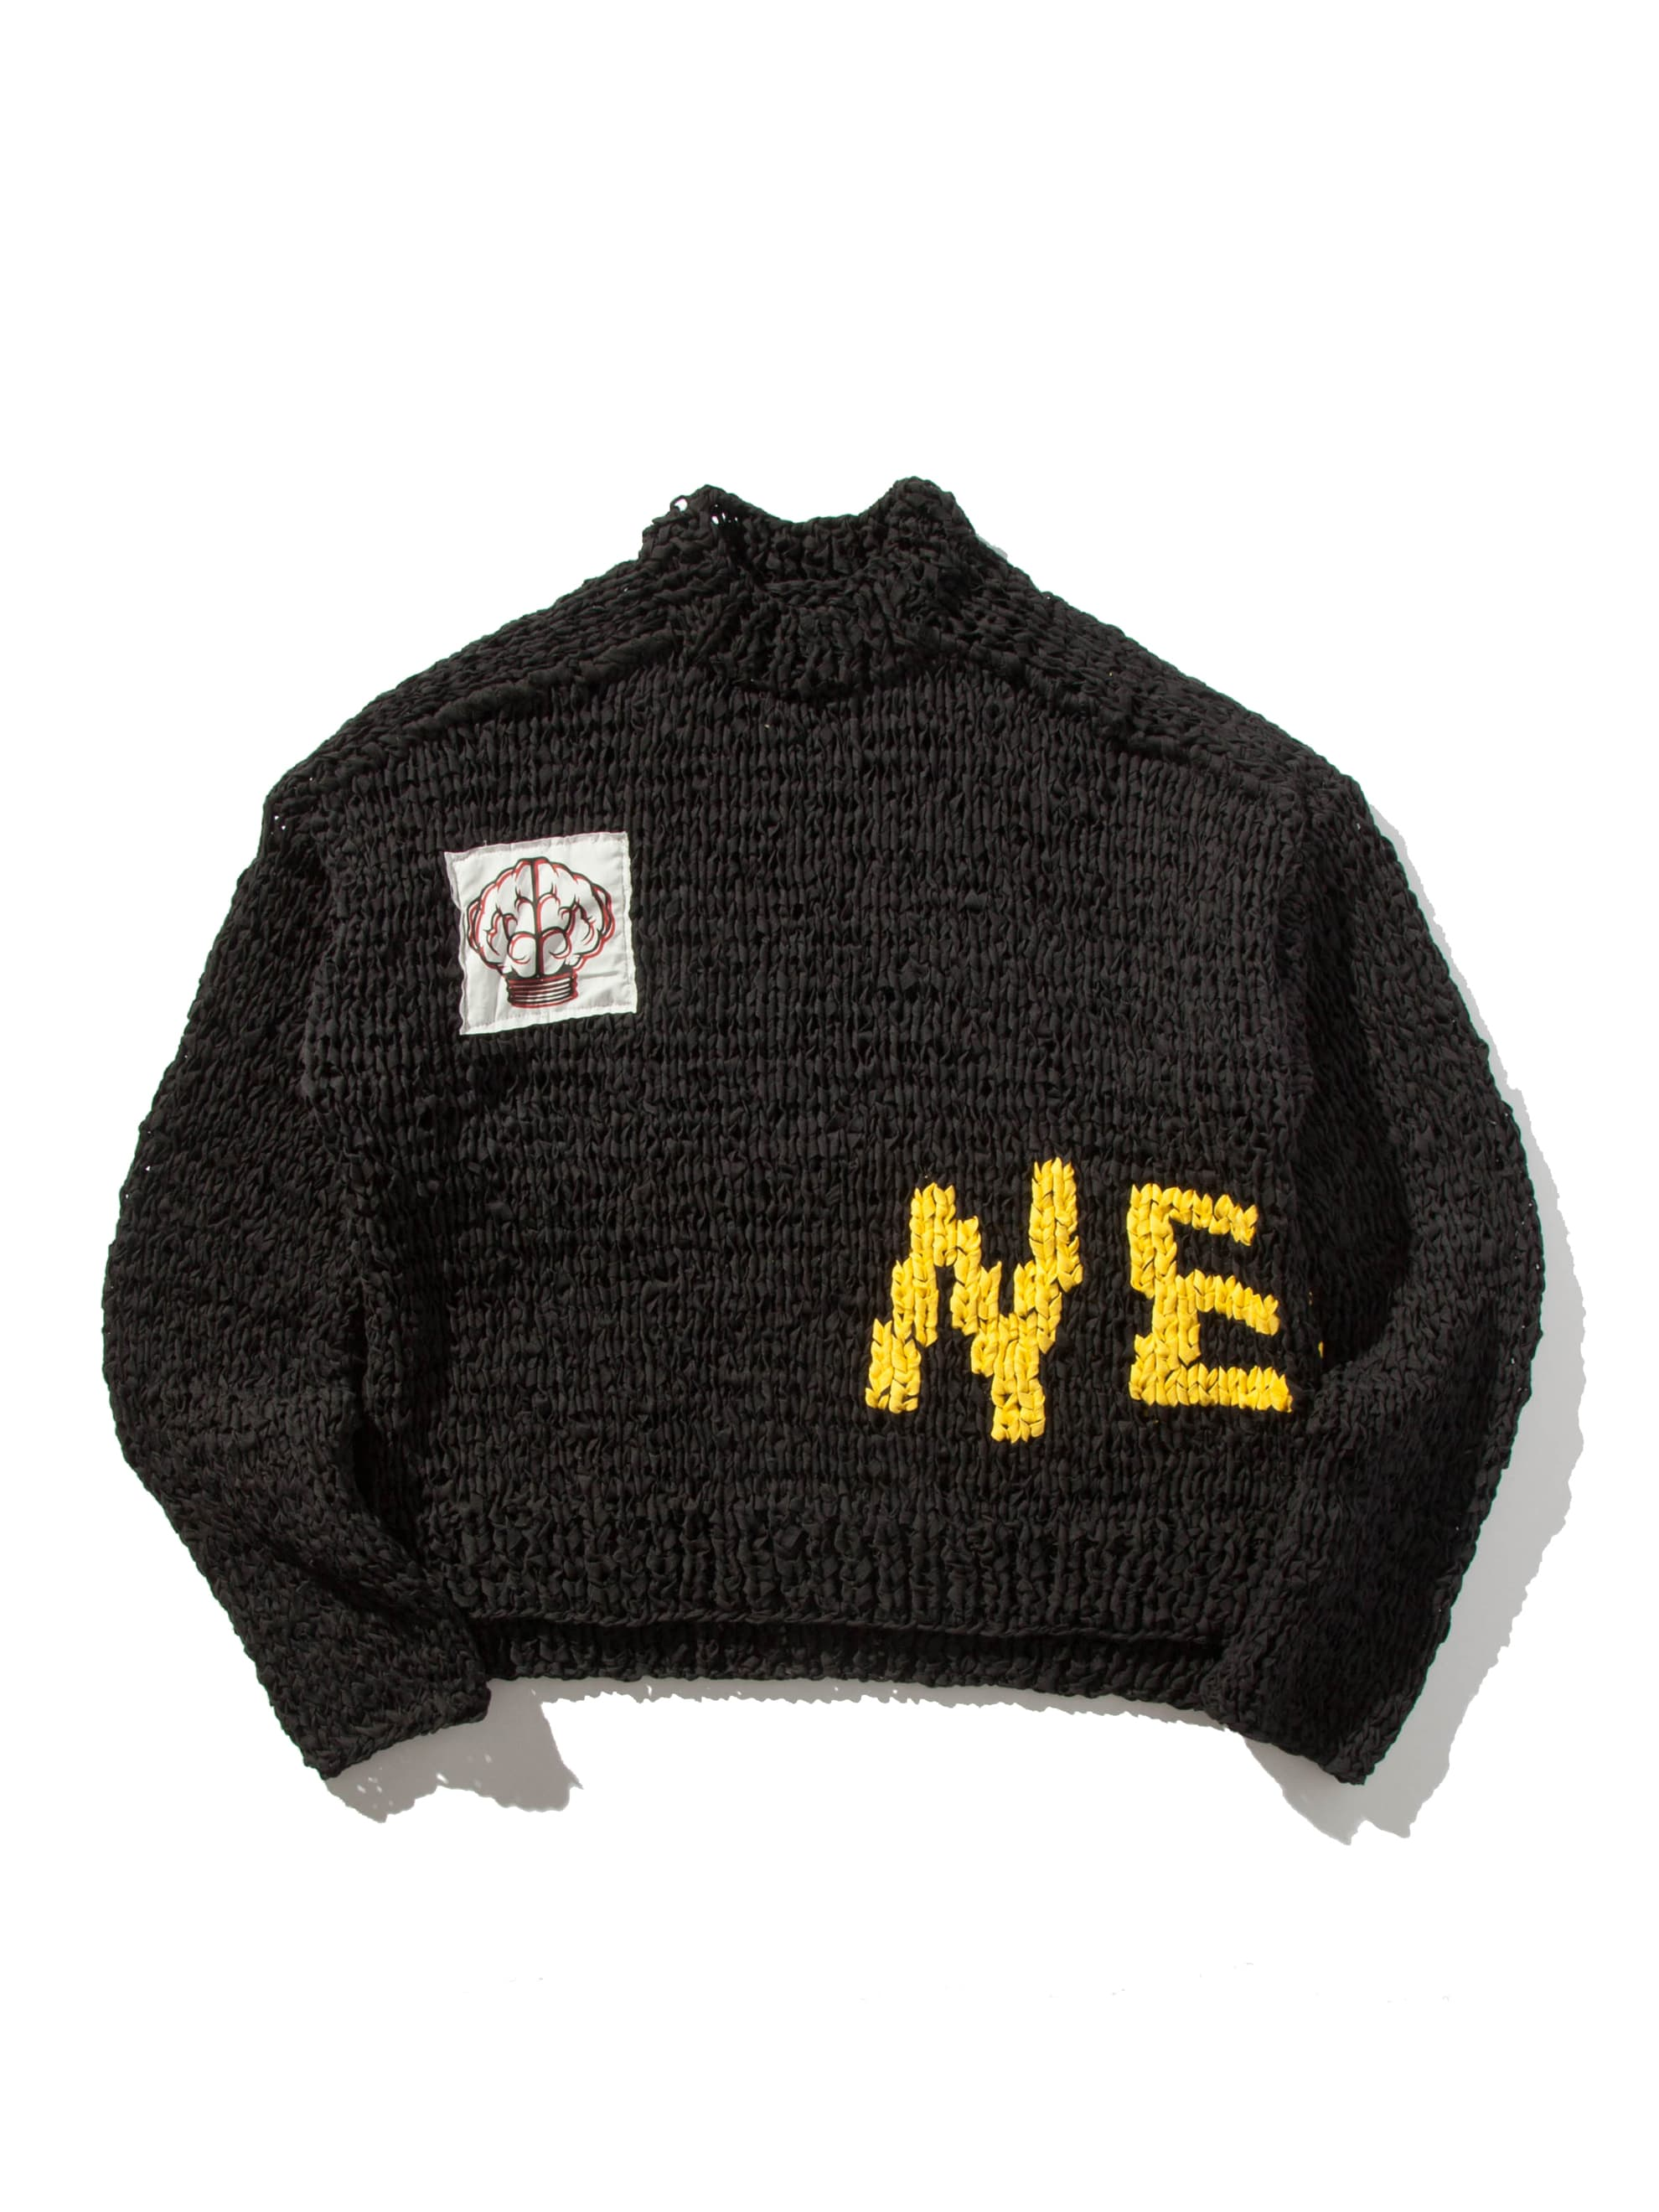 Union x Ambush NERD sweater